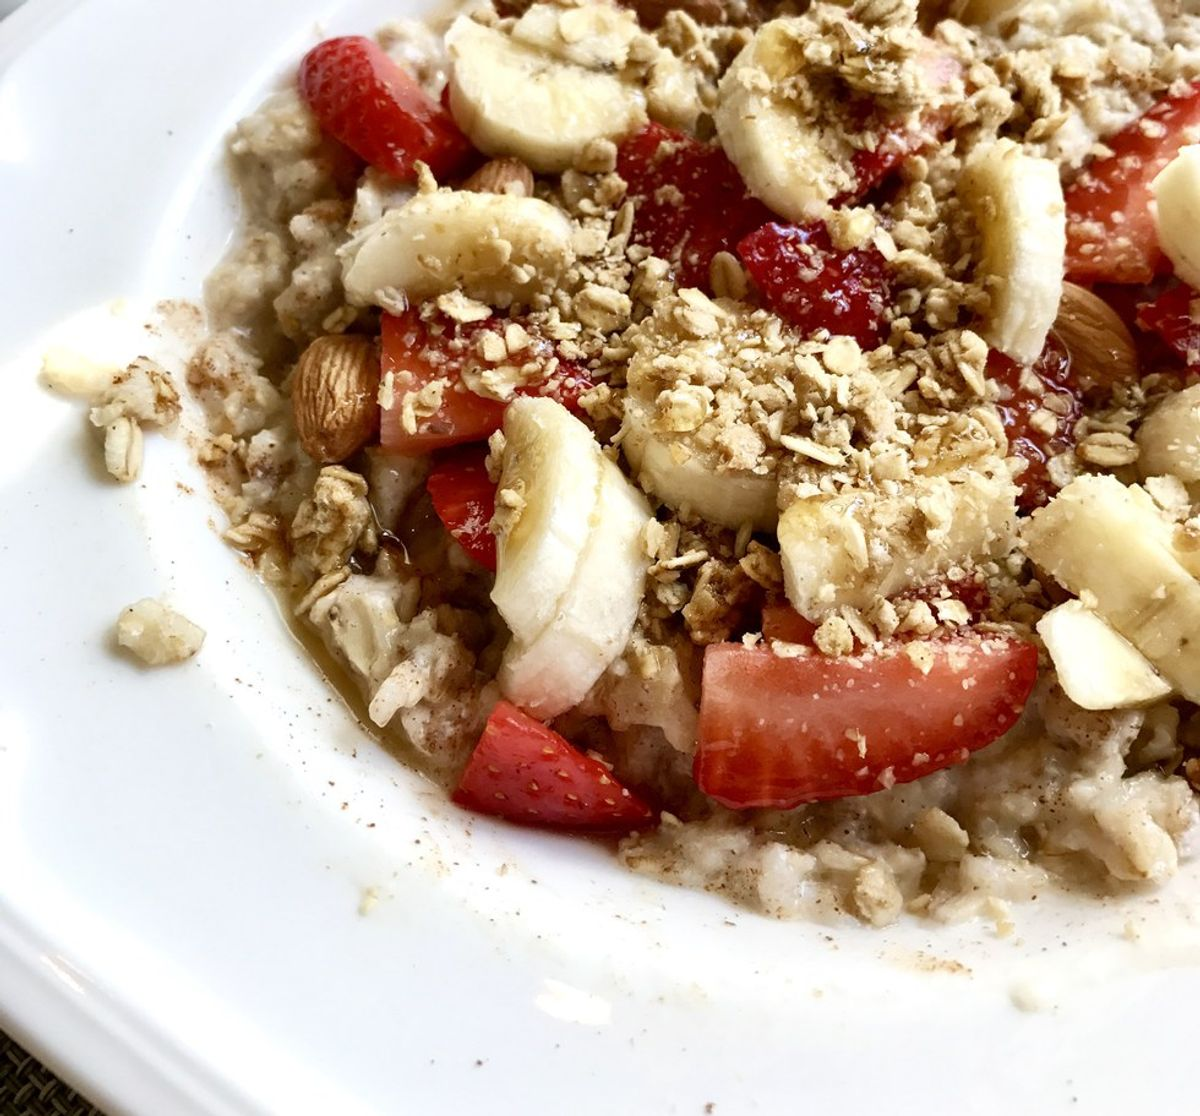 How To Make A Strawberry And Banana Protein Bowl